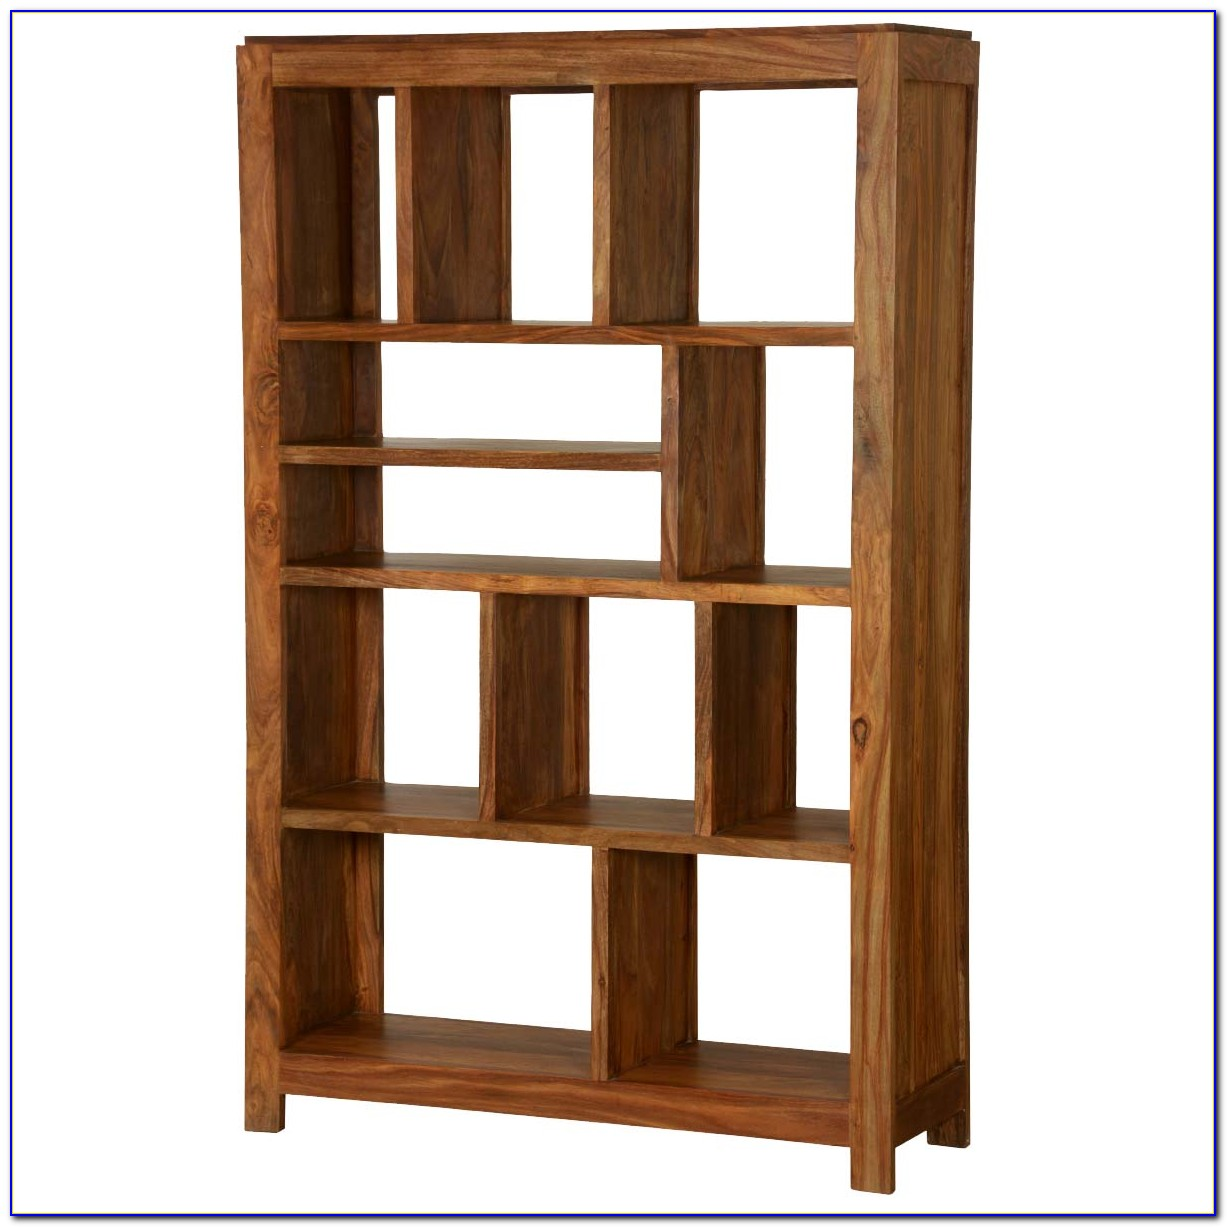 Cube Shelving Wooden